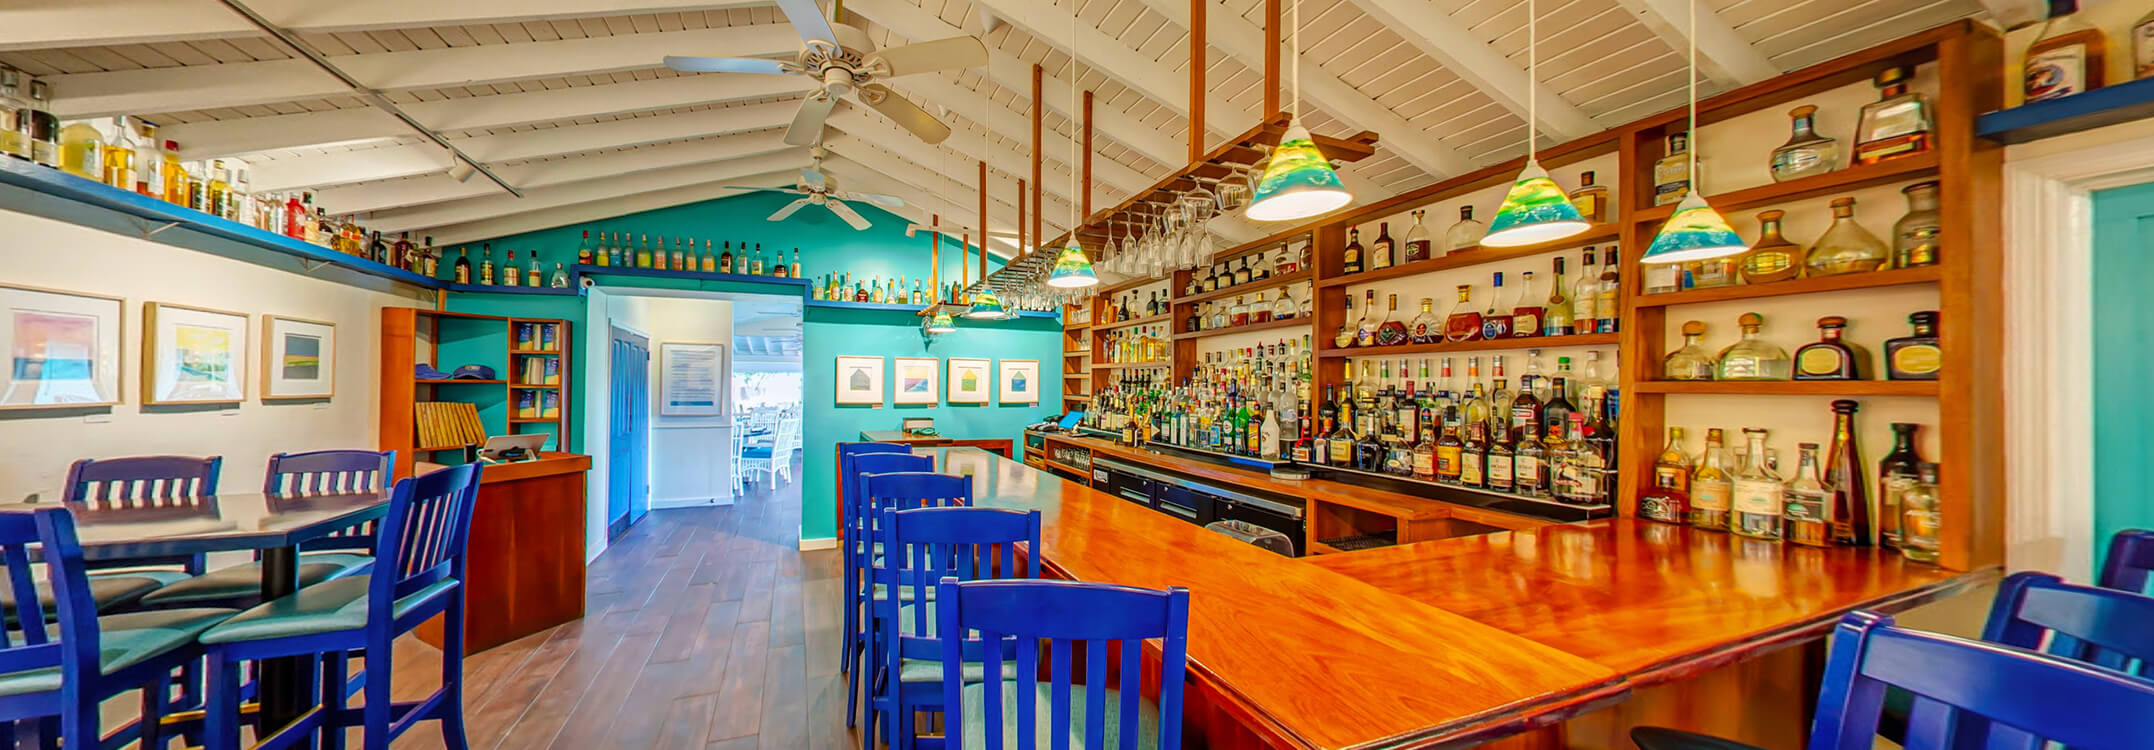 Blanchards bar with bright Caribbean colors stocked with premium liquors